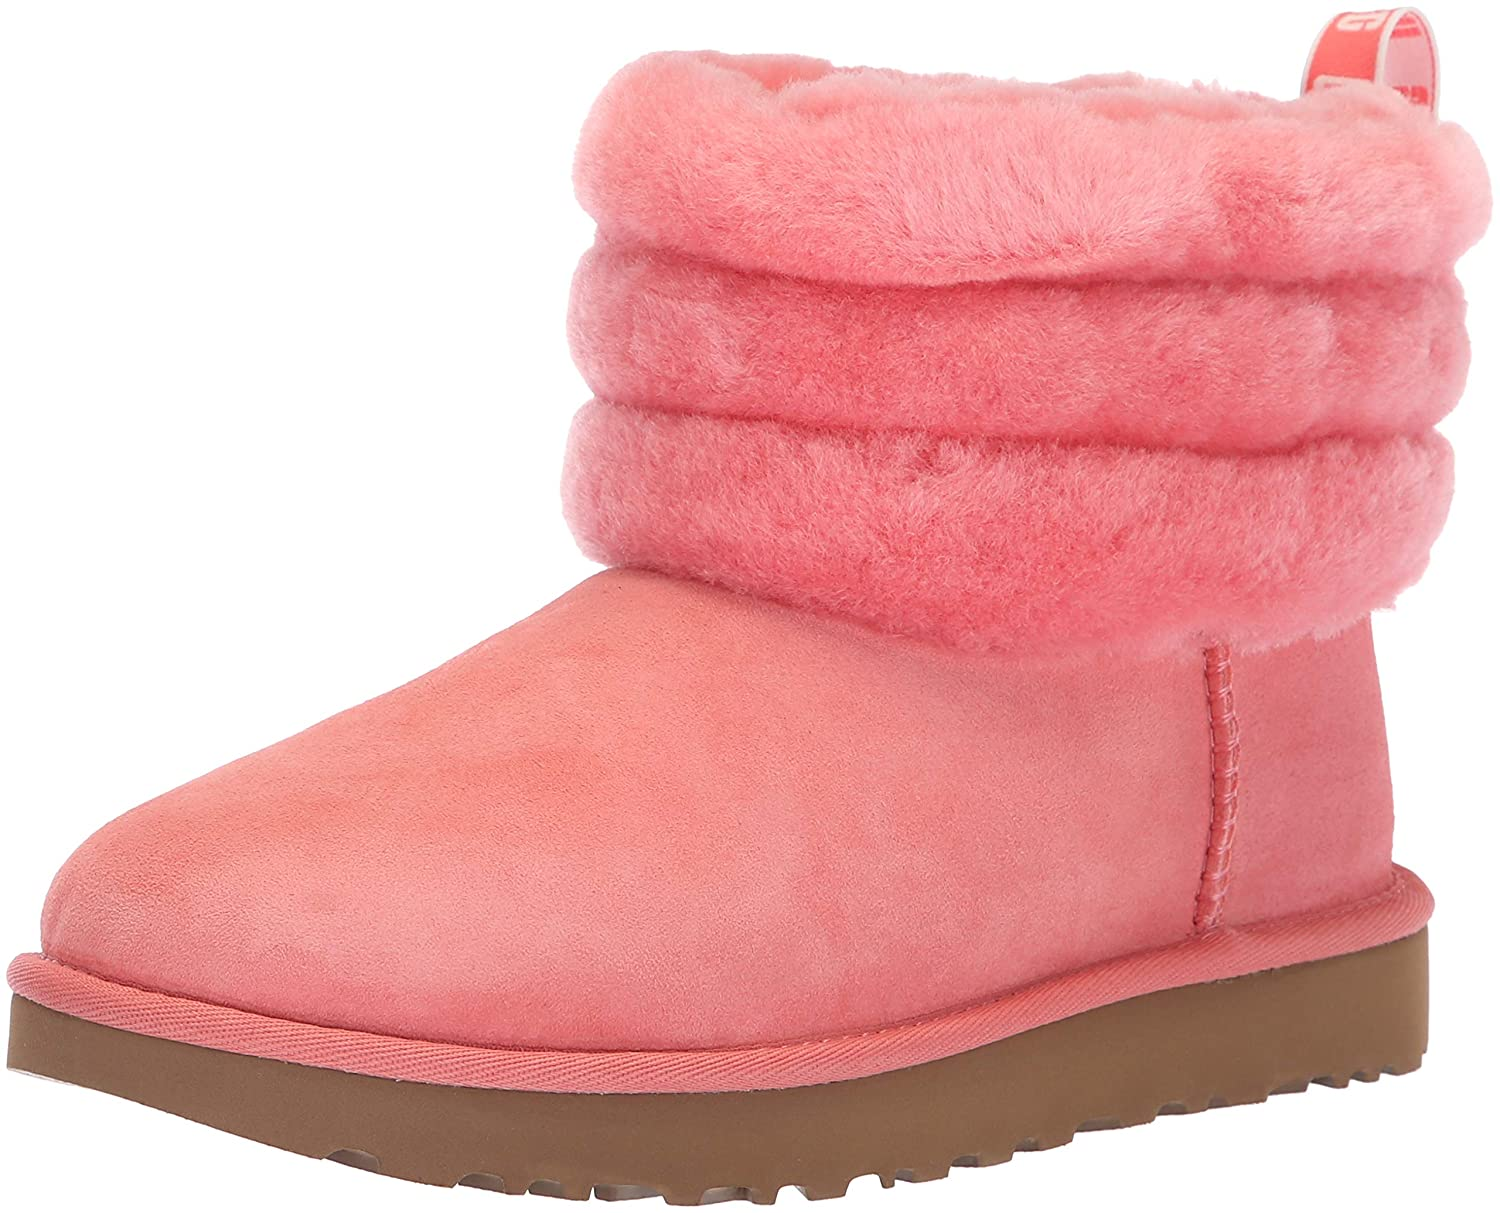 71ea67097bb UGG Women's W Fluff Mini Quilted Fashion Boot, Lantana, 12 M US ...